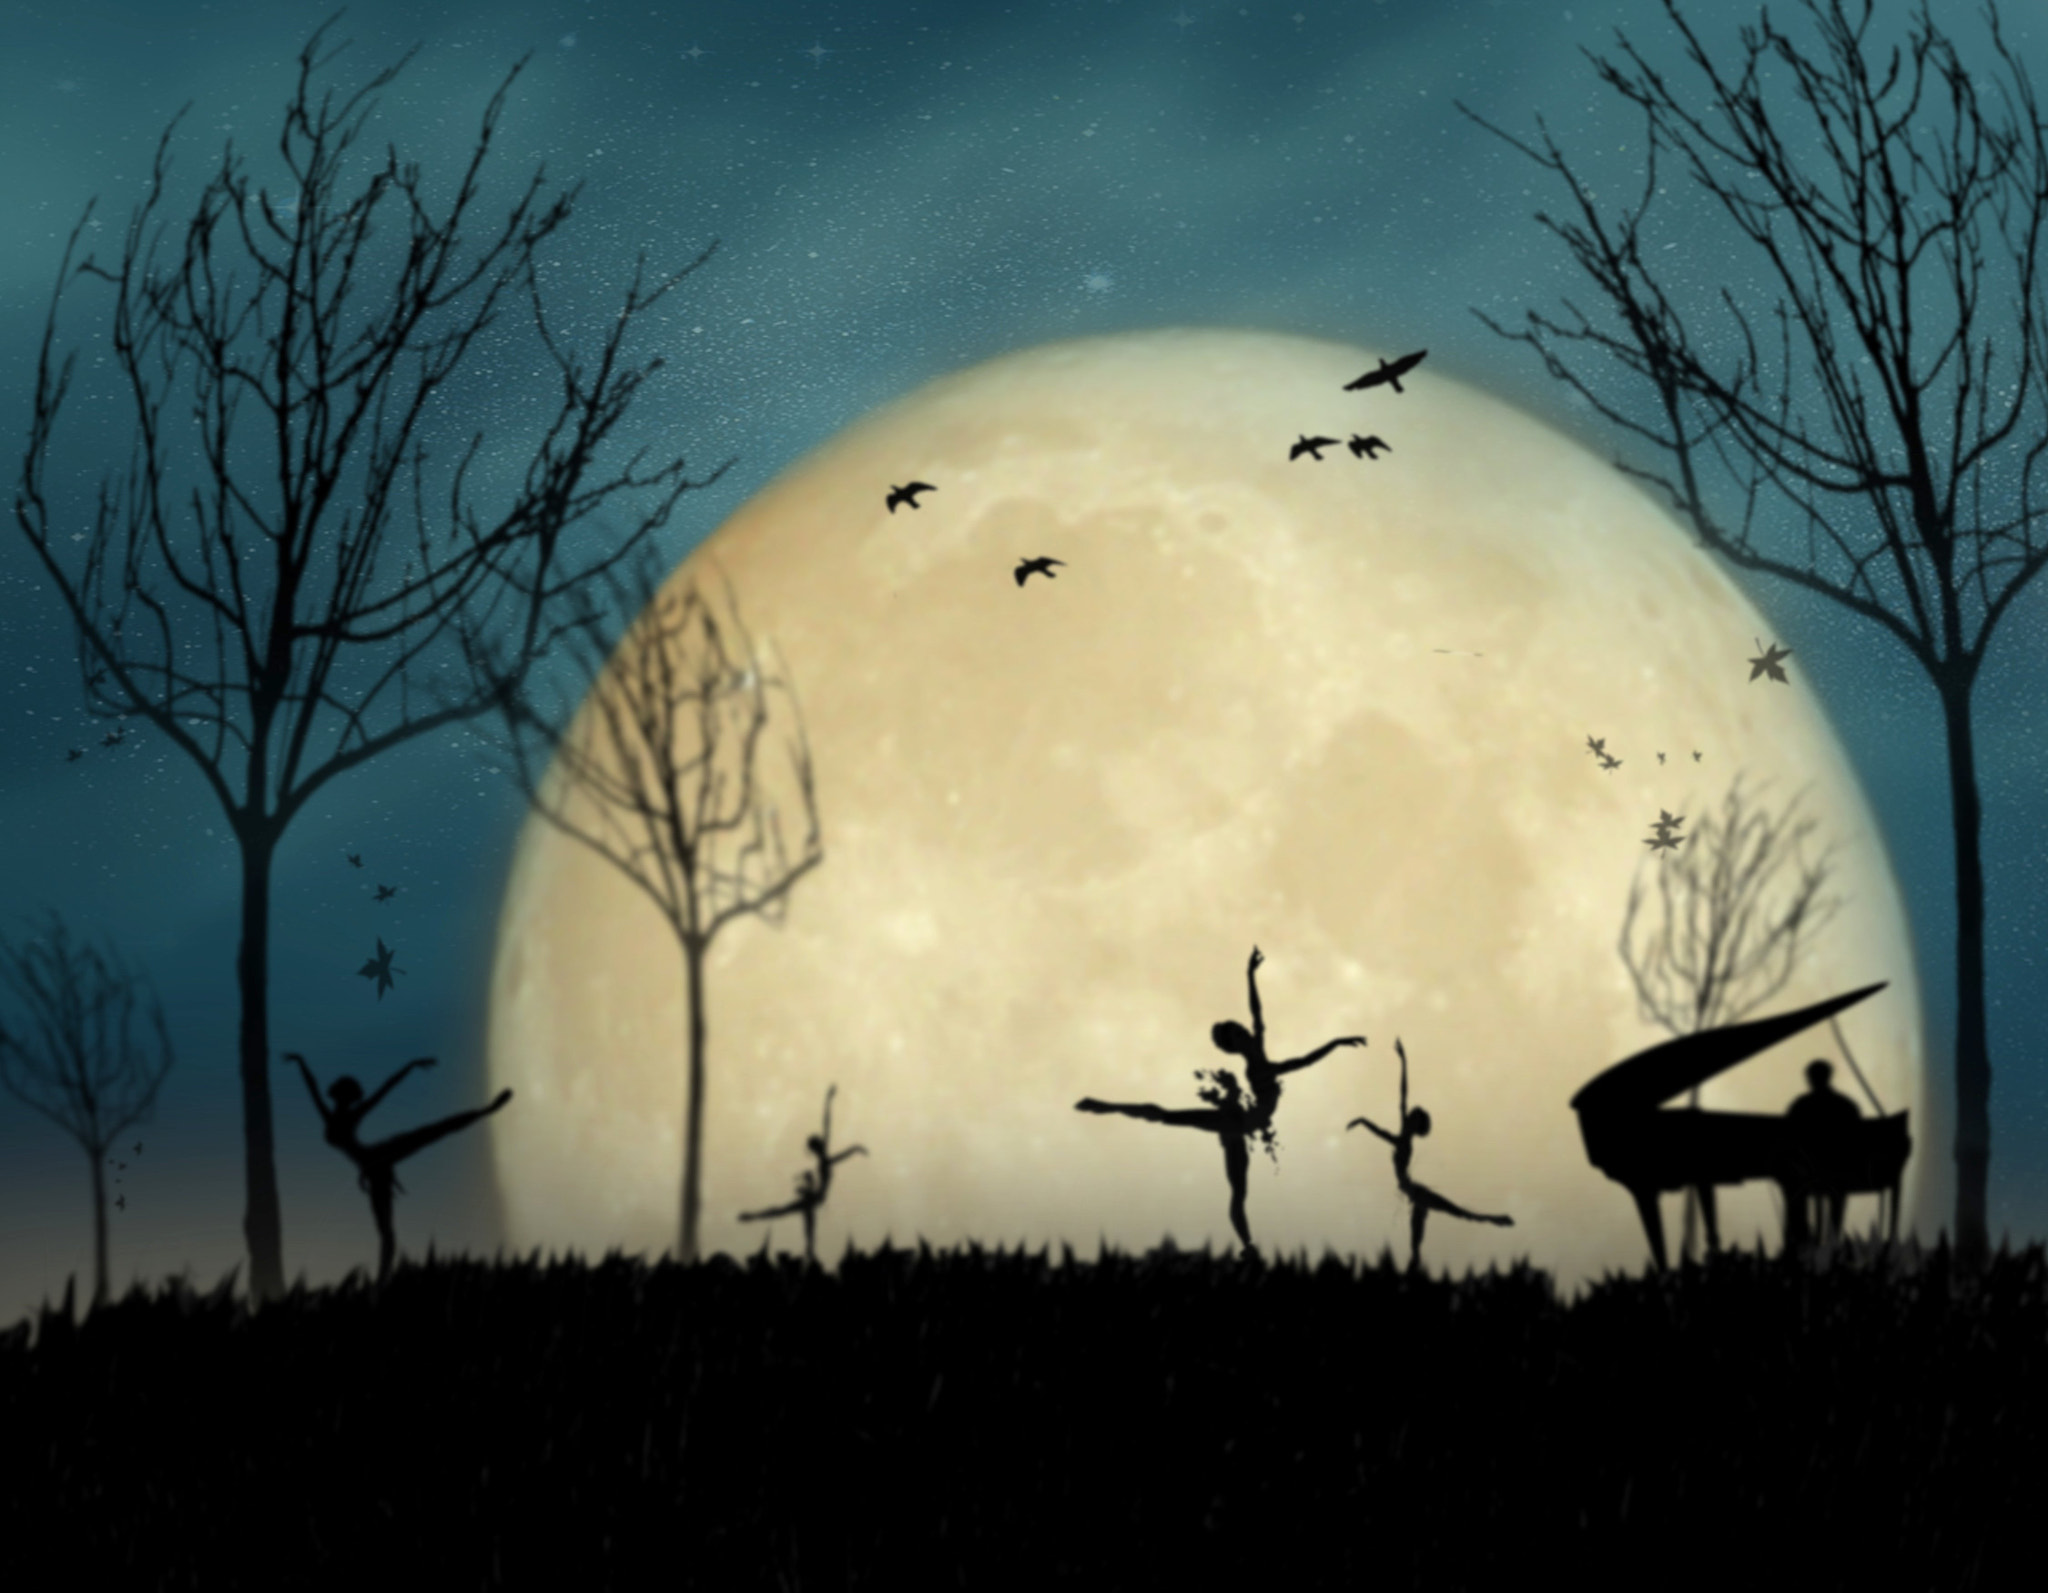 Photograph Moonlight Melody by Moses Benson on 500px